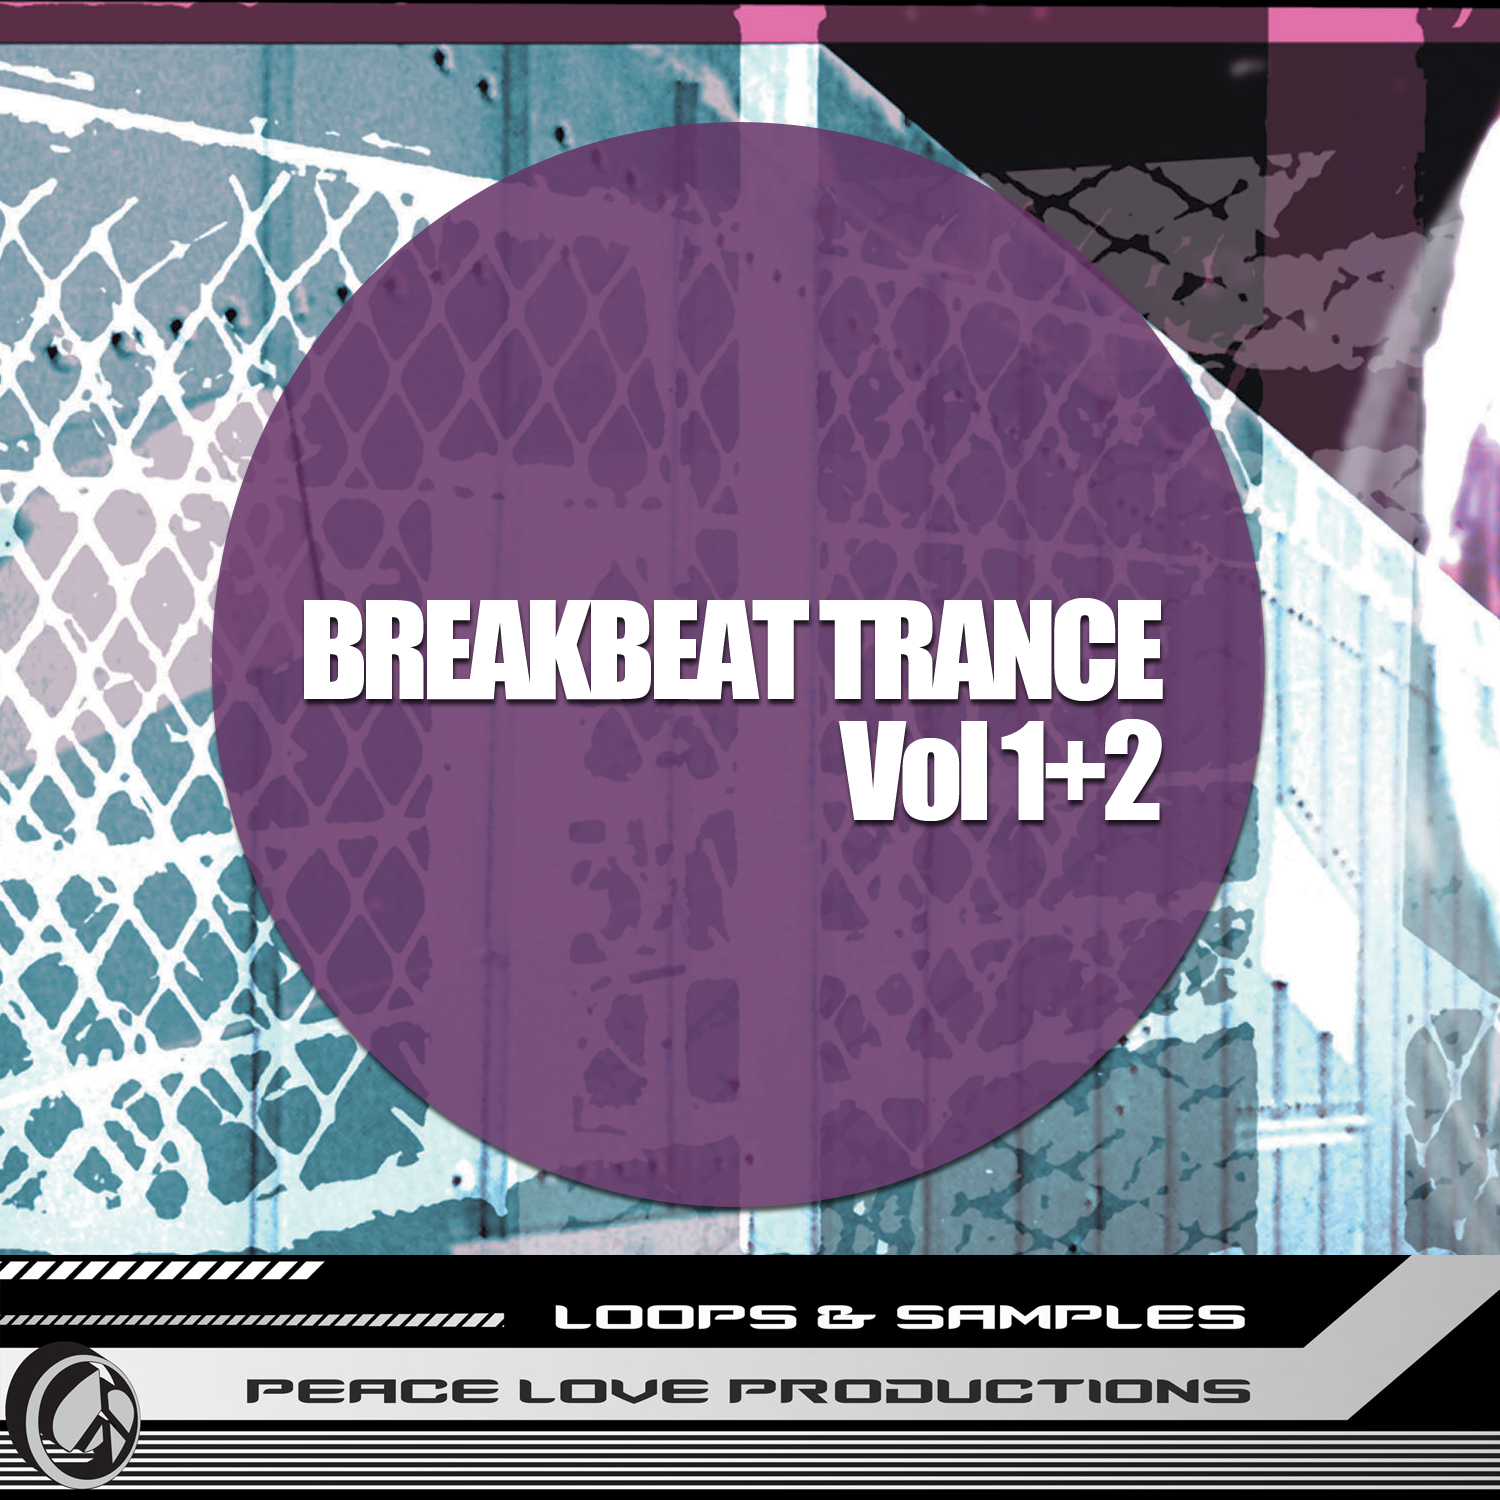 Breakbeat trance Loops